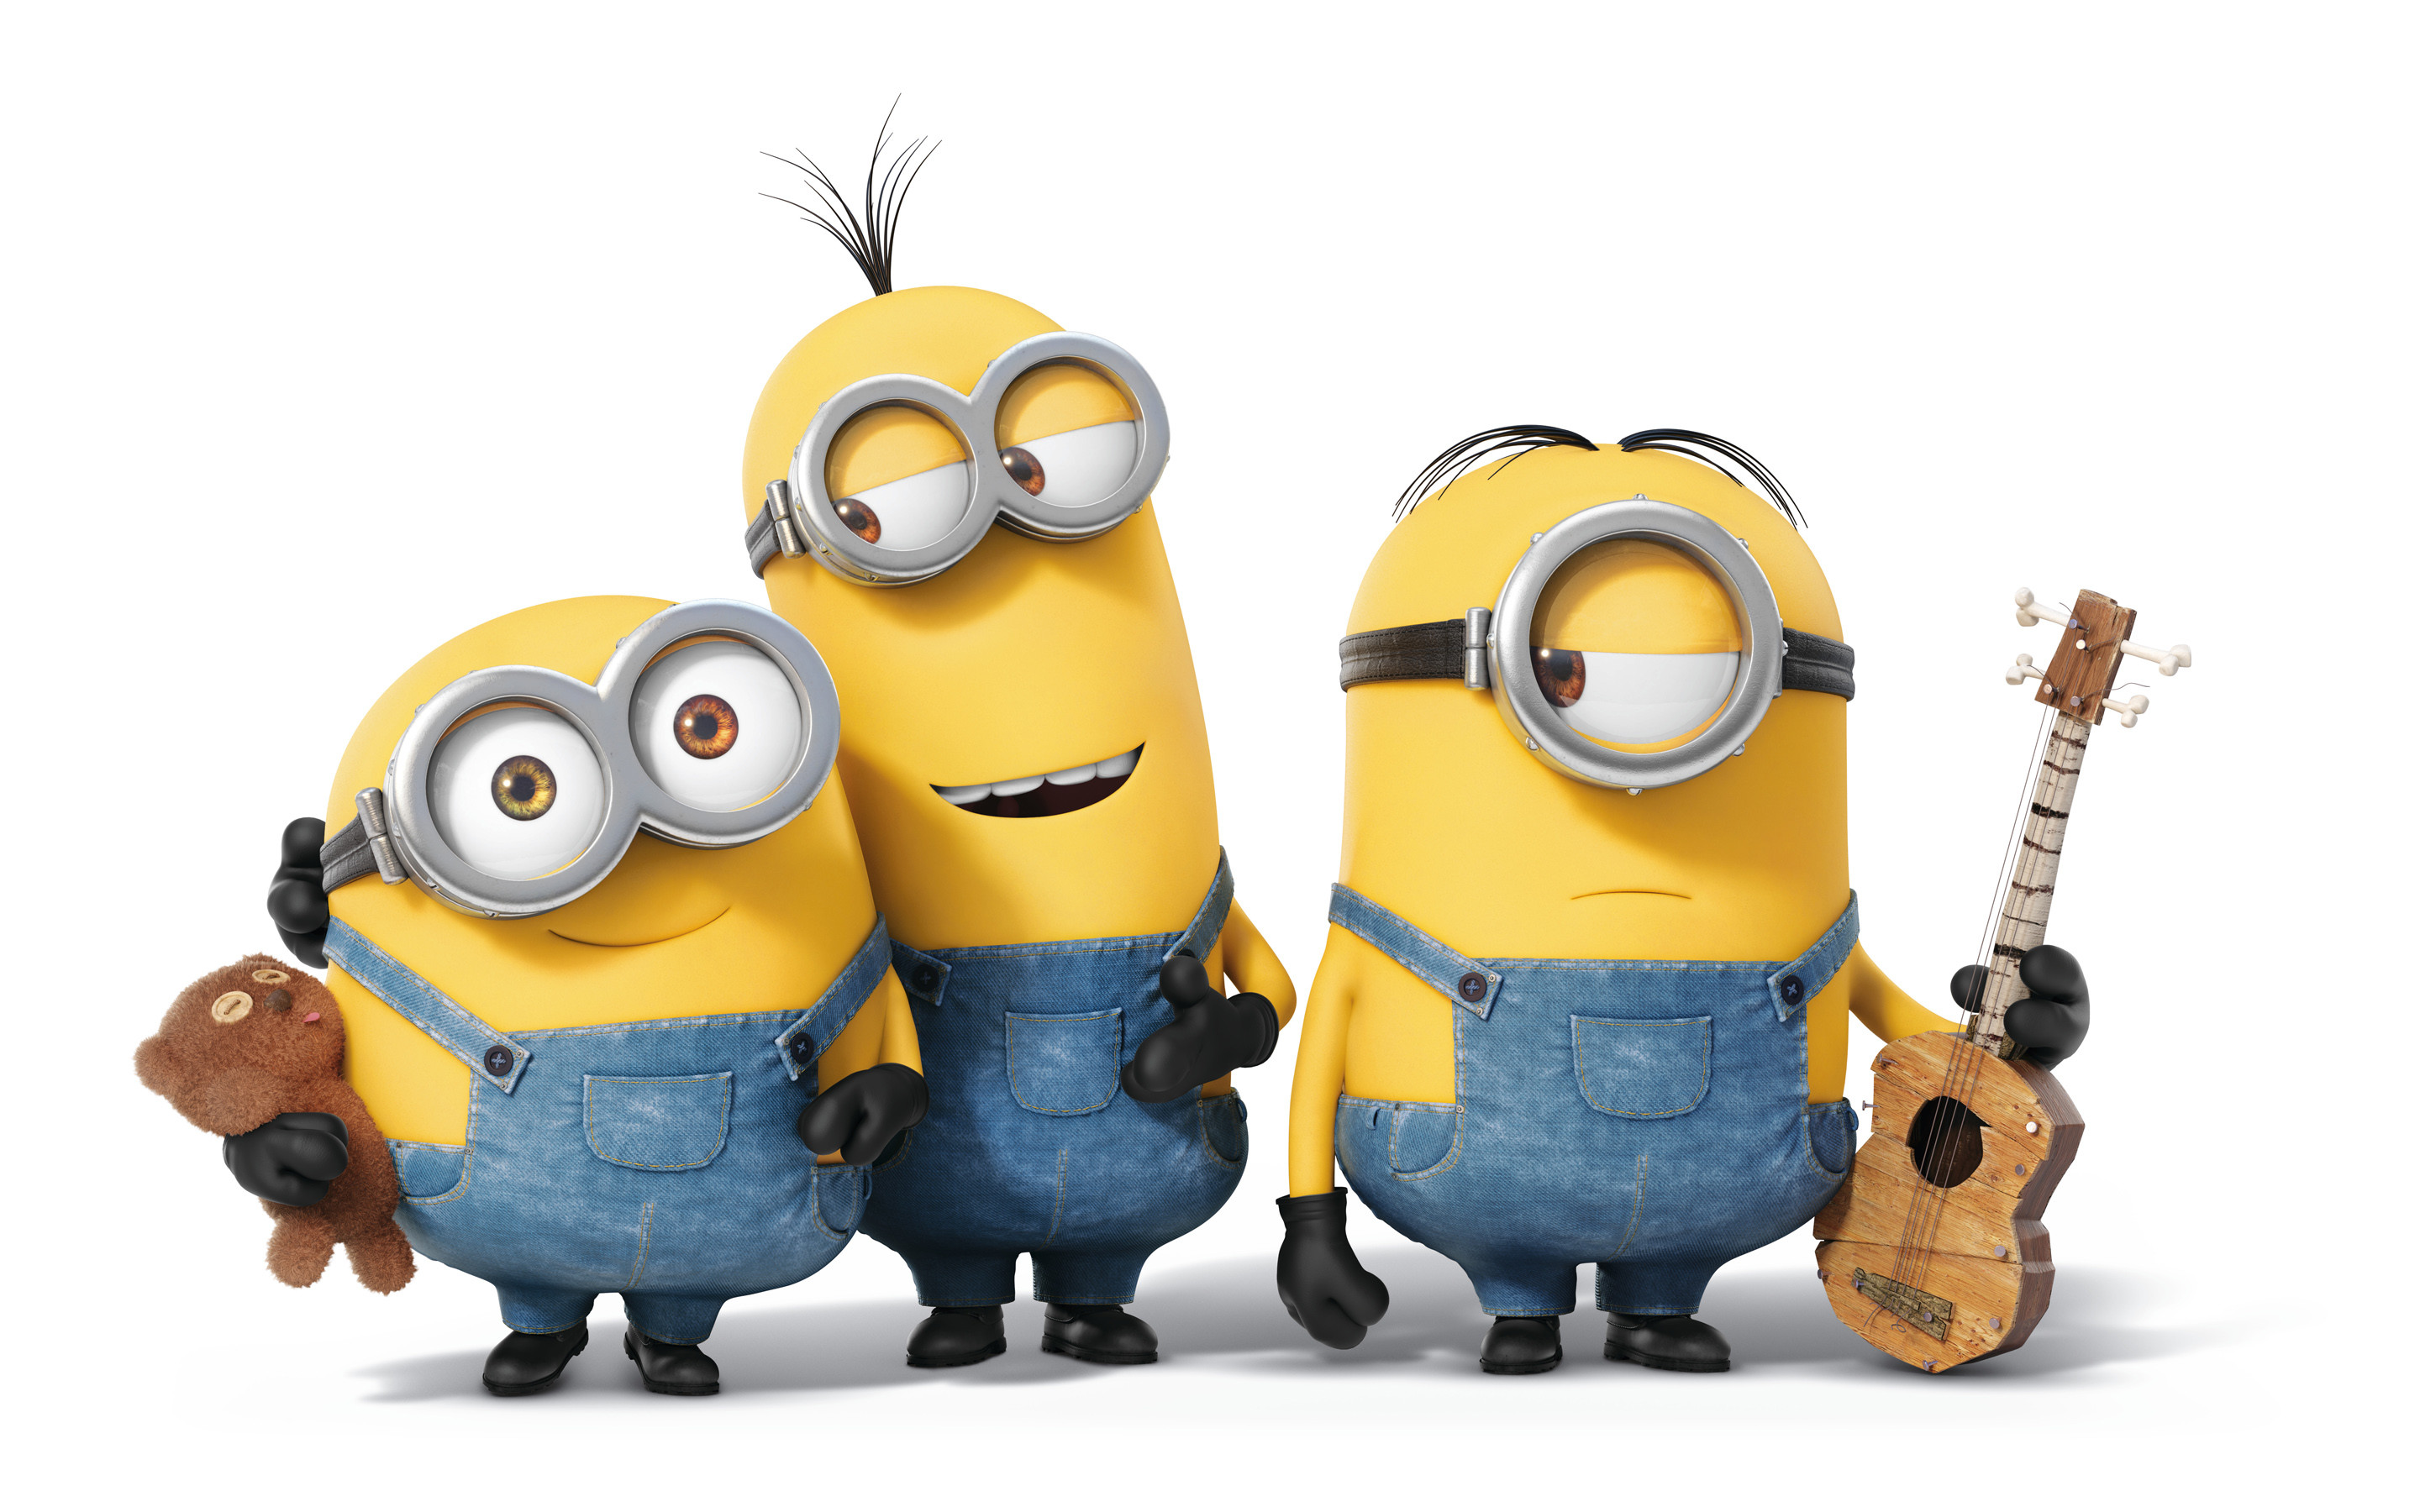 Res: 2880x1800, Screensavers And Wallpaper Minions, View: 234585871 Screensavers And Wallpaper  Minions, ModaF.com